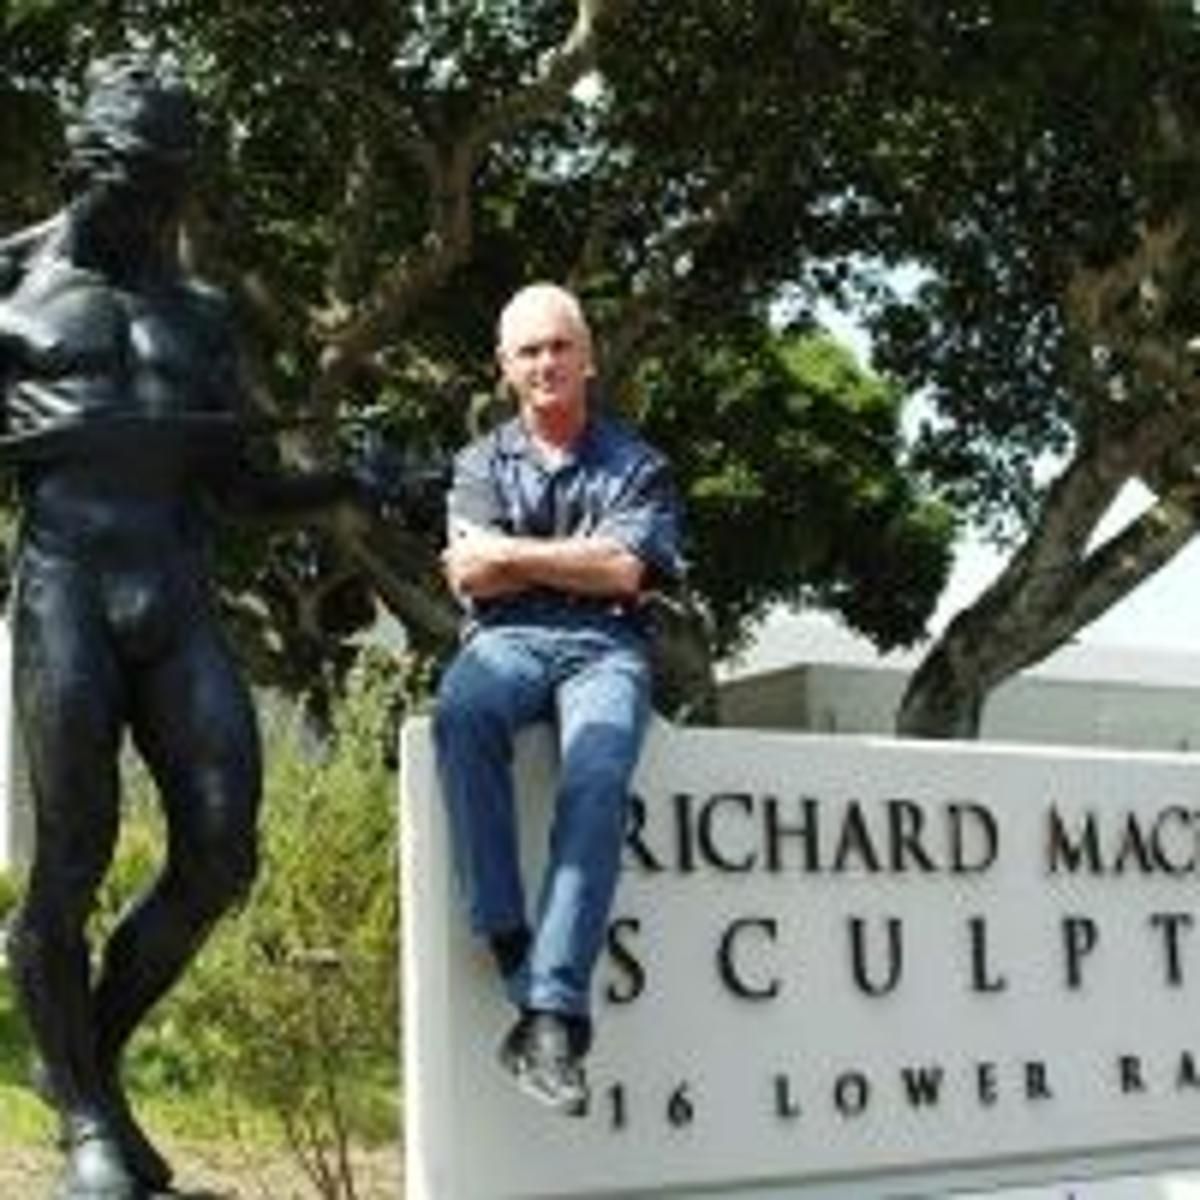 Sculptor Richard Macdonald Forges Art From Life Local News Montereycountyweekly Com